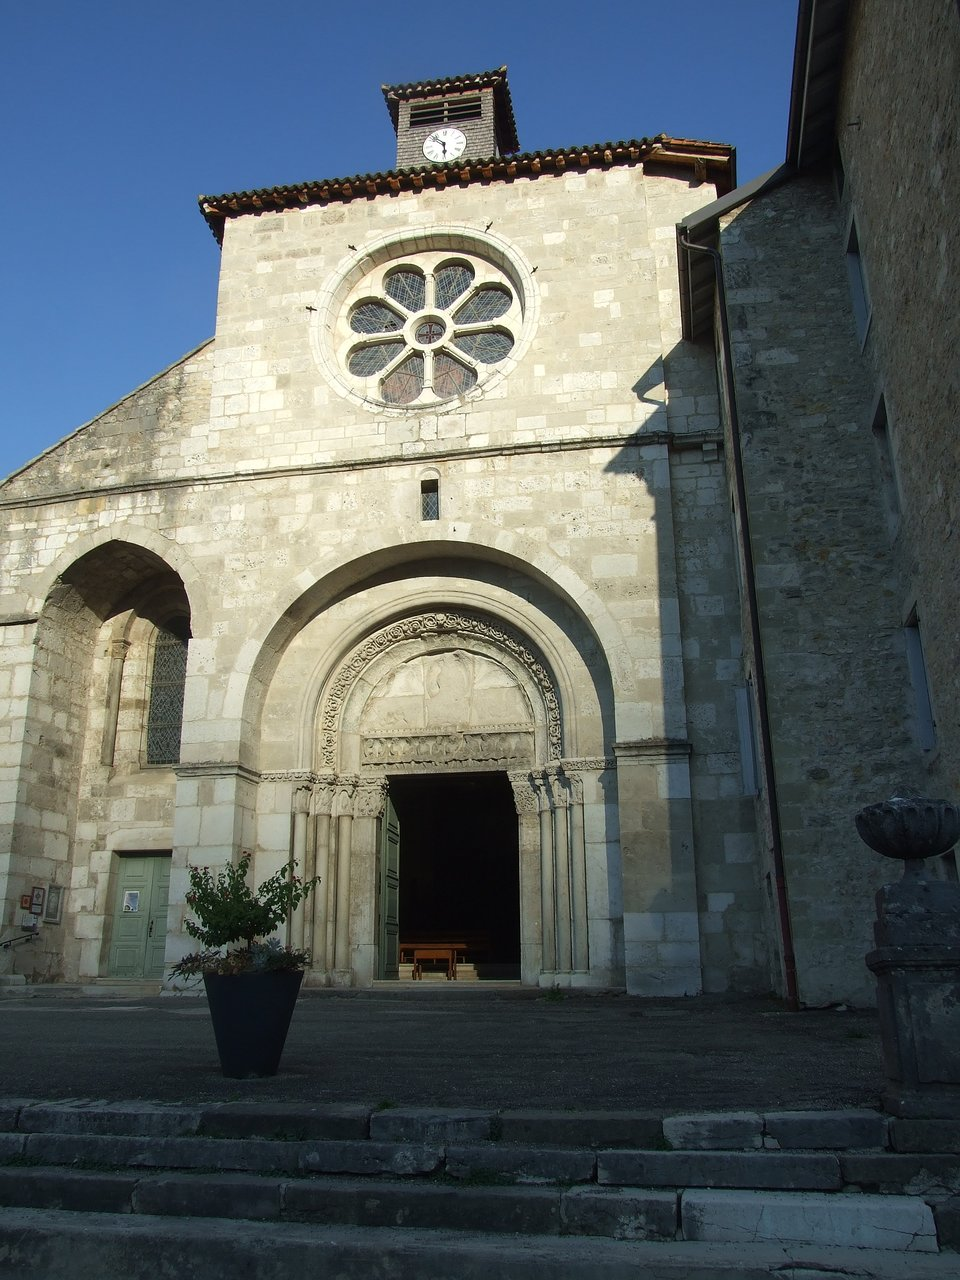 Office Tourisme Nantua Abbatiale Saint Michel Nantua All You Need To Know Before You